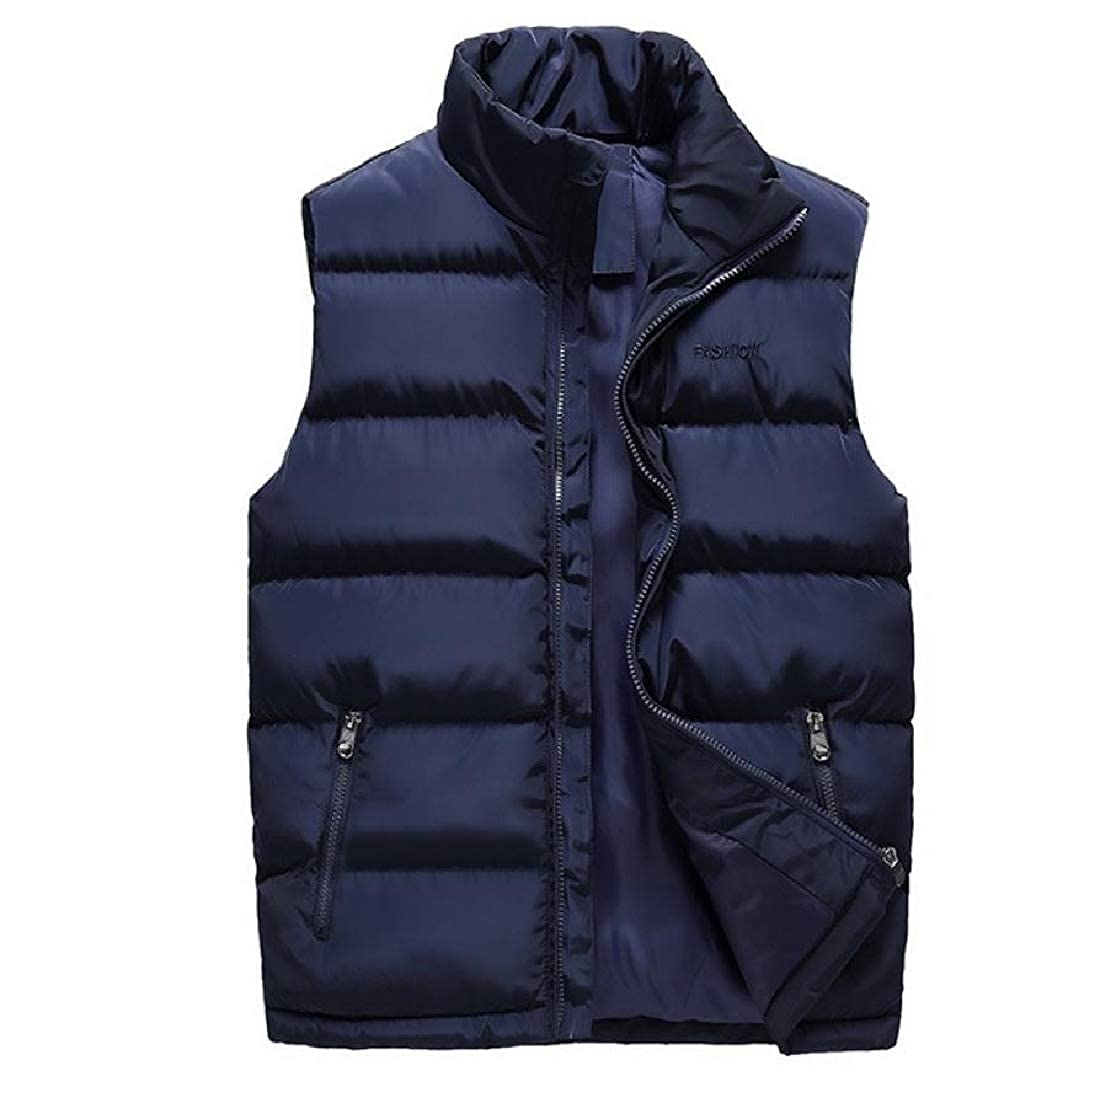 Beeatree Men Packable Vogue Ultra Lightweight No Embroidery Sports Vest